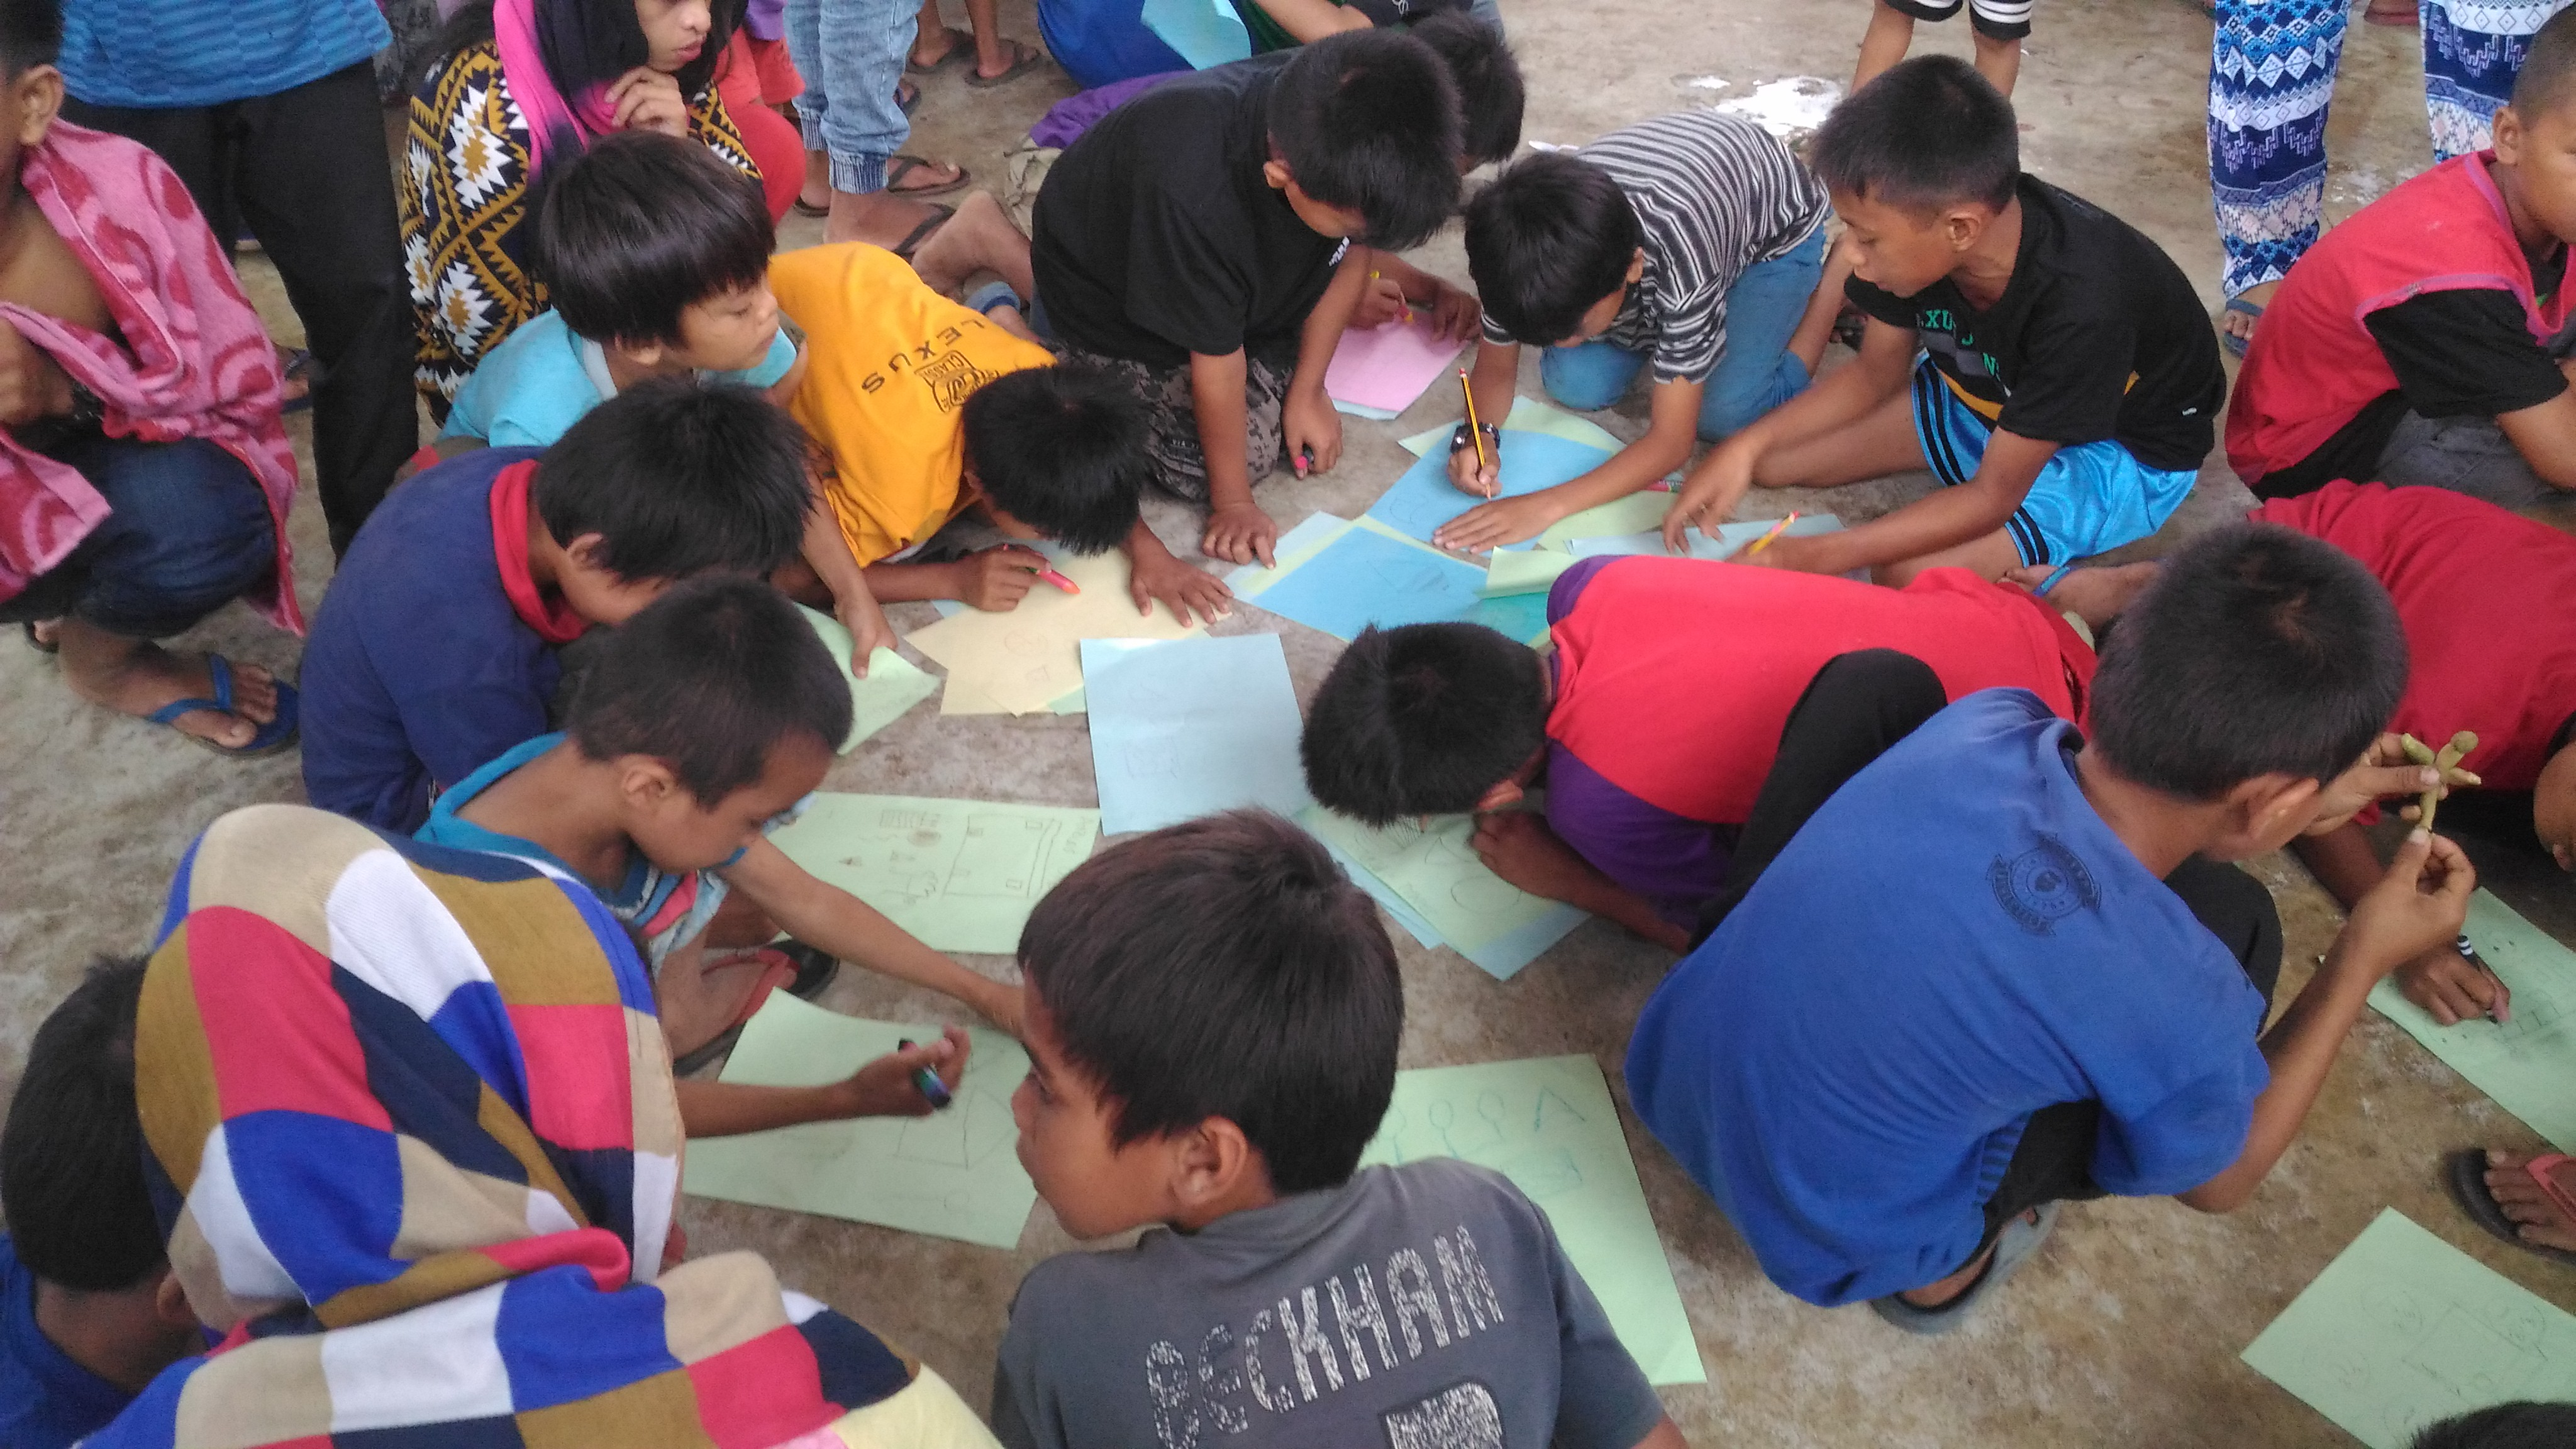 Children evacuees from Marawi at work during a psychosocial workshop led by Salinlahi (Contributed photo)